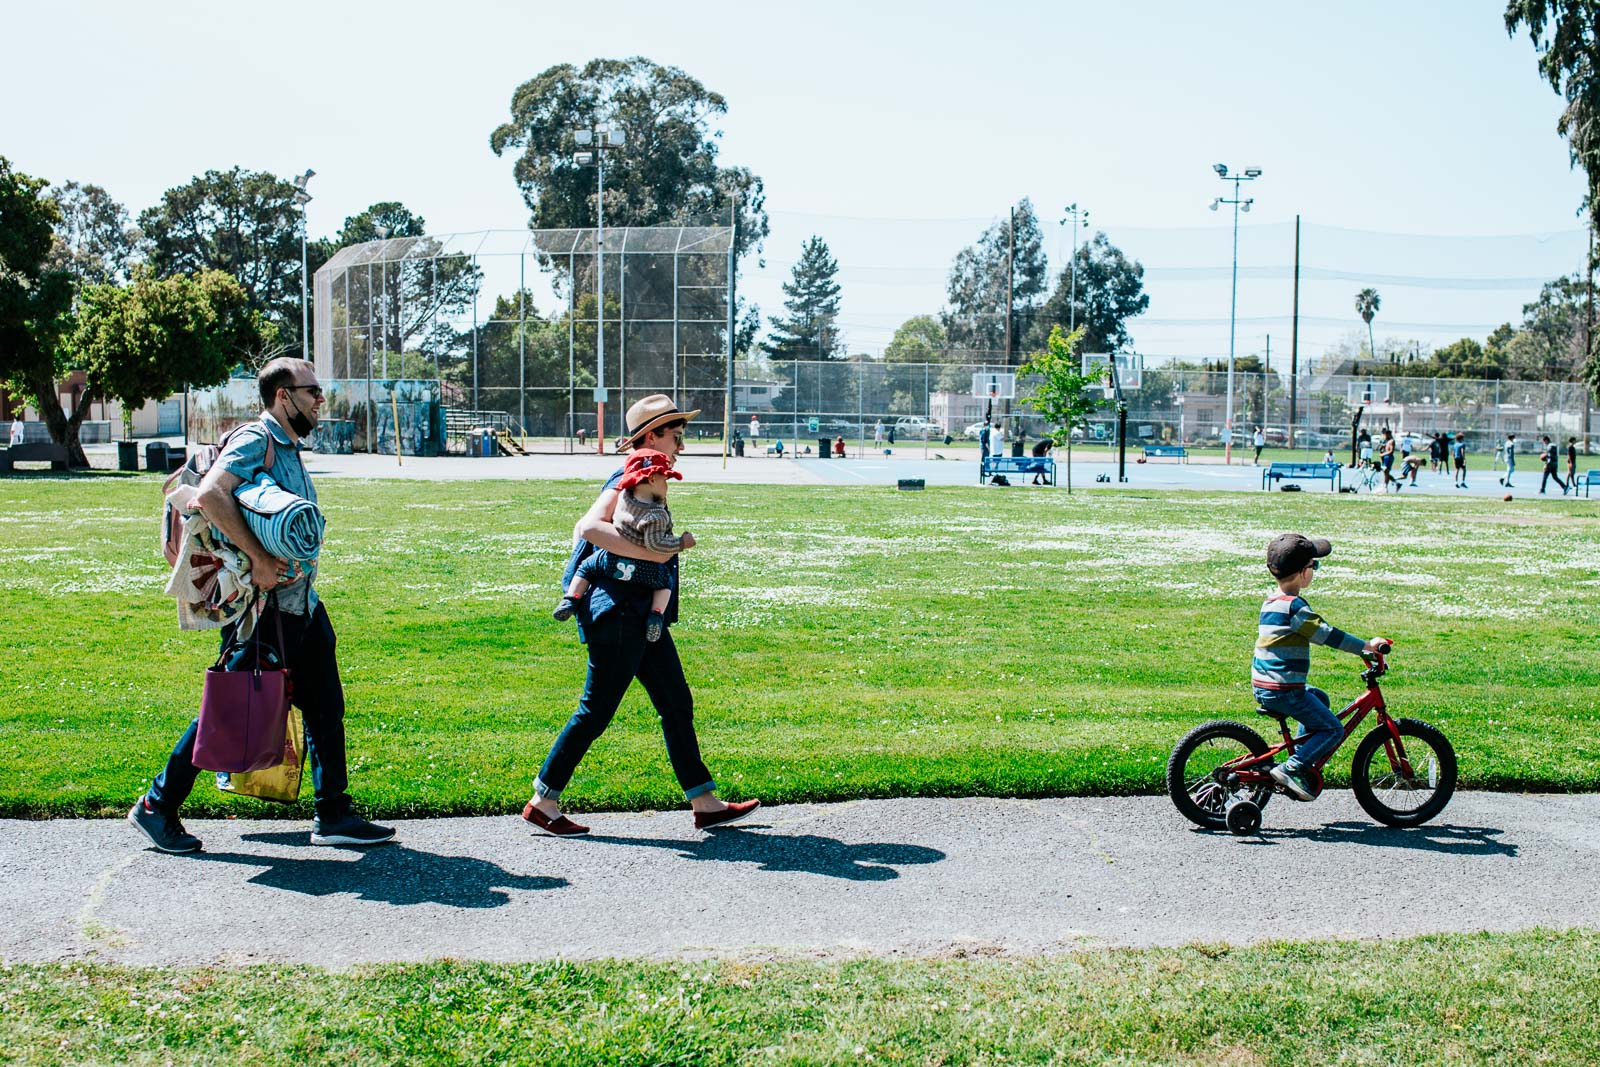 A family works through Washington Square Park in Alameda, CA